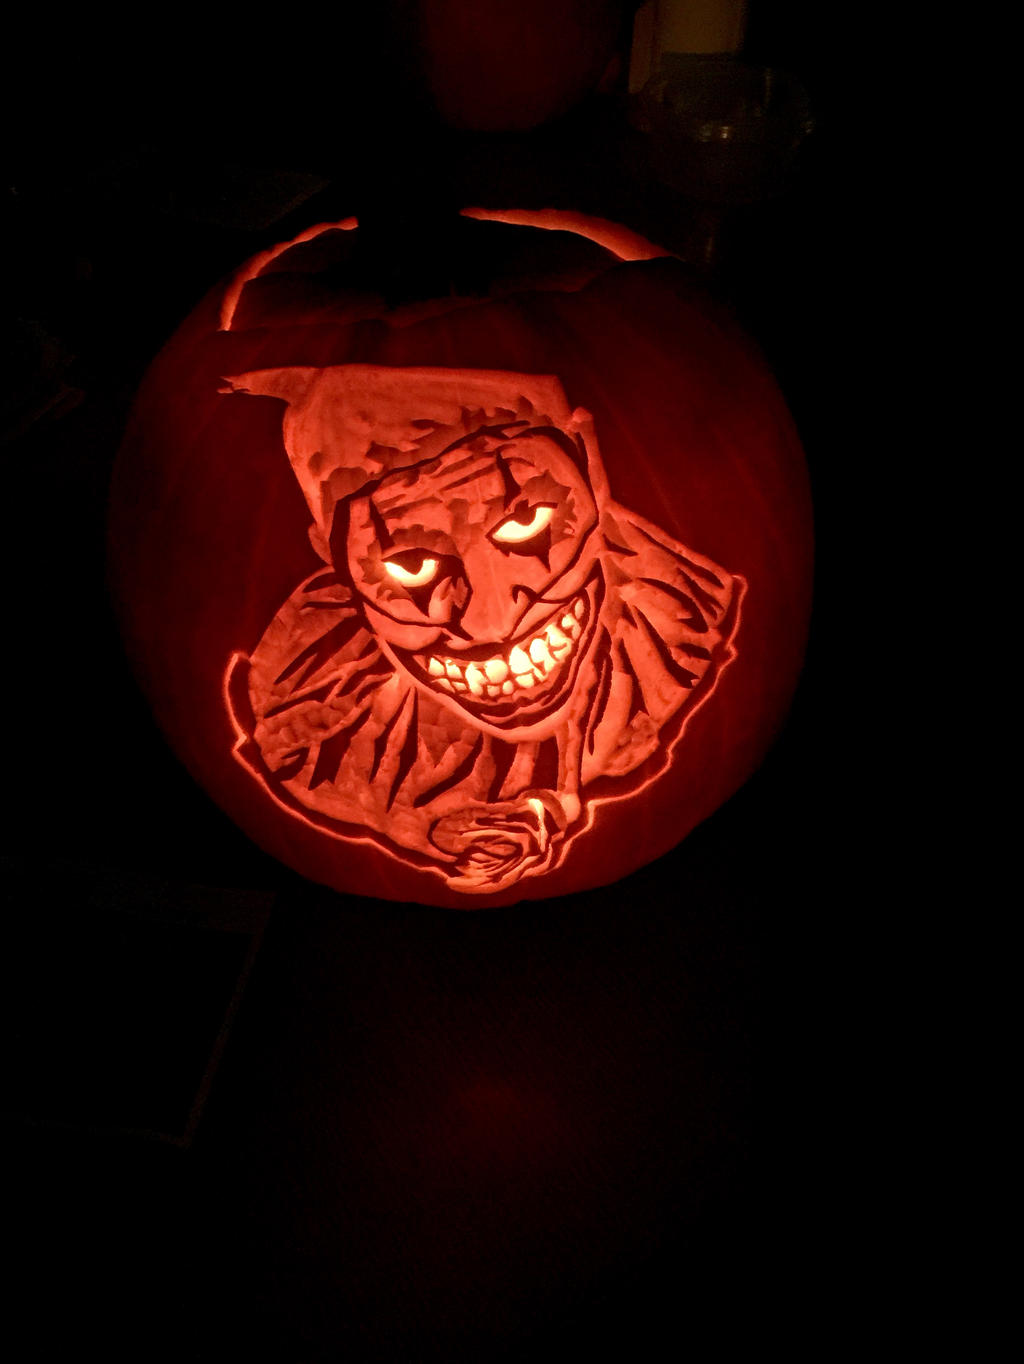 Twisty the clown by firefly181 on deviantart for Clown pumpkin painting